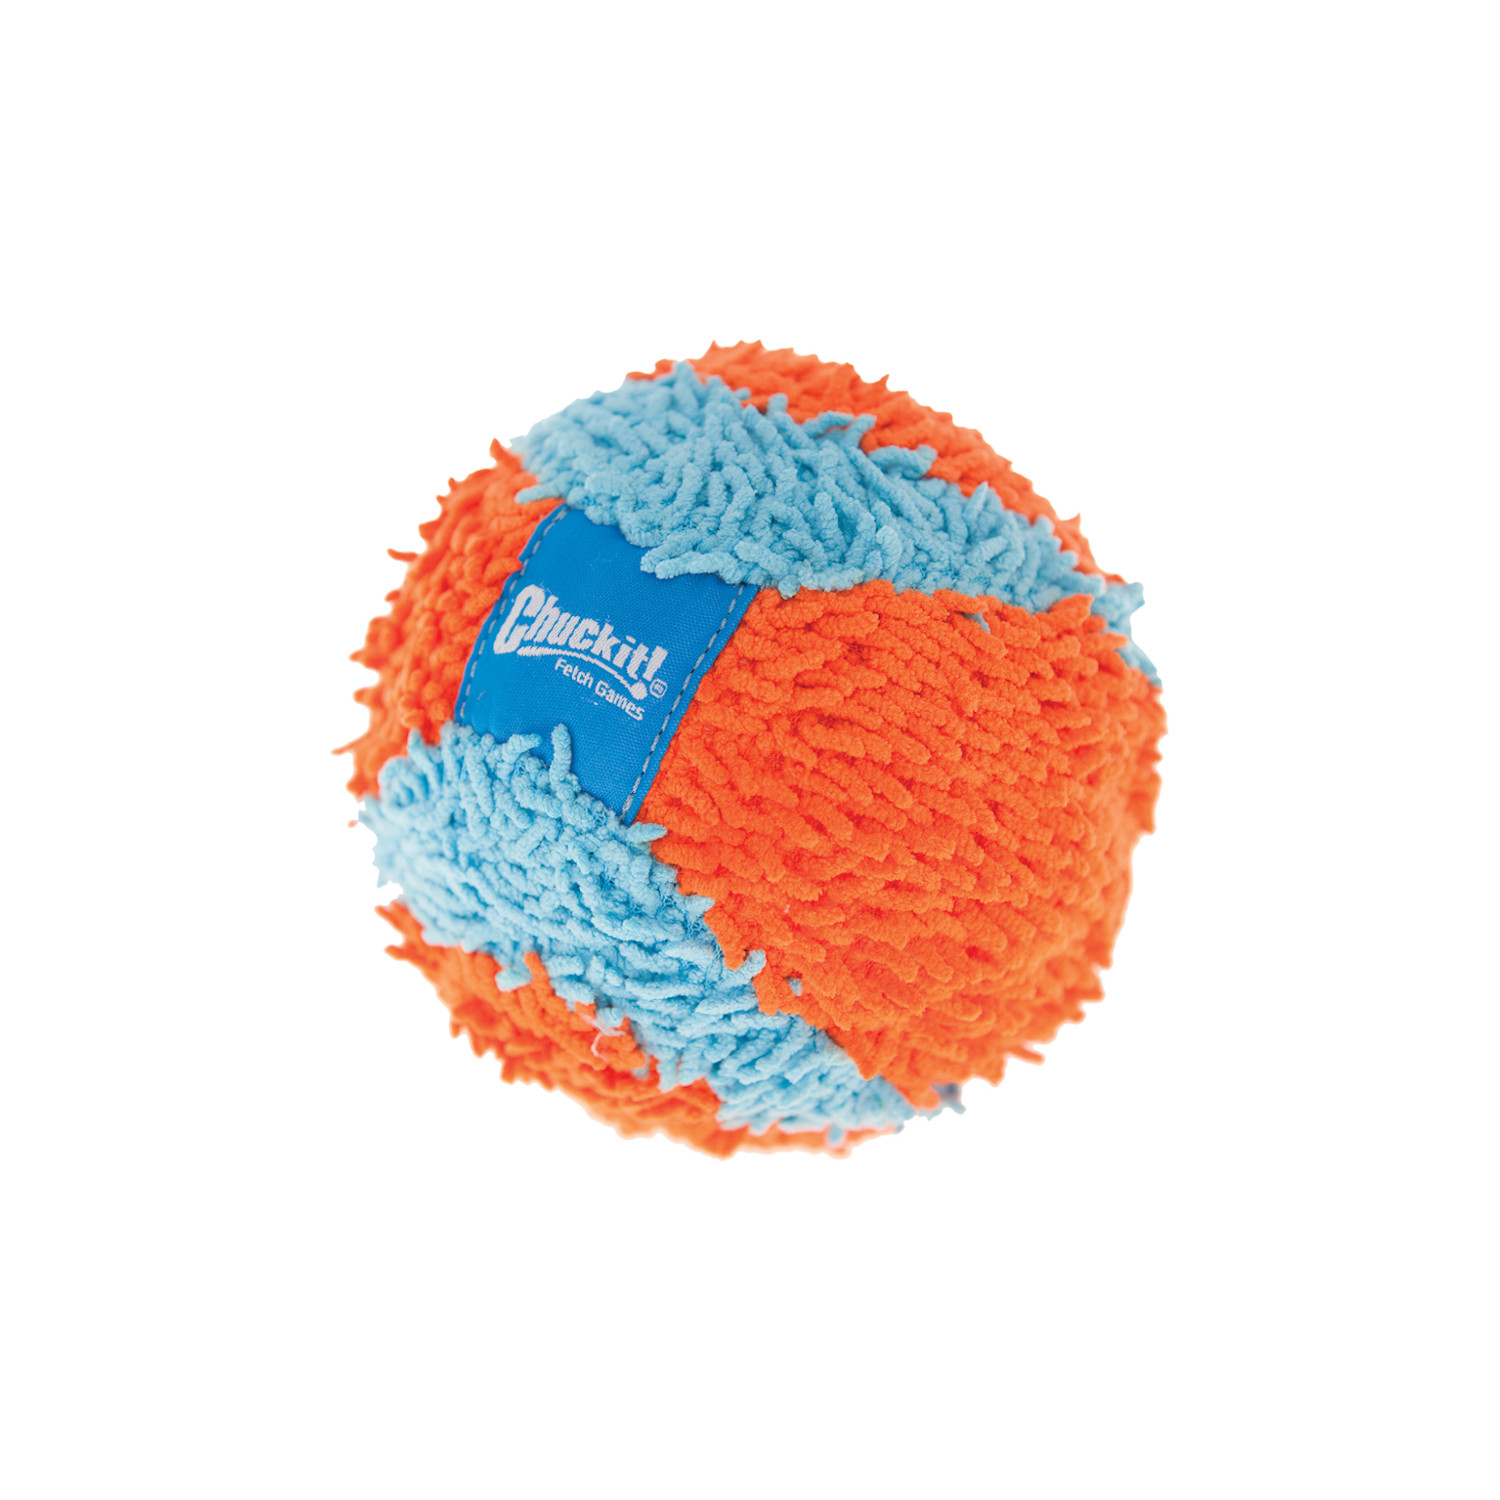 Indoor Ball - Chuckit